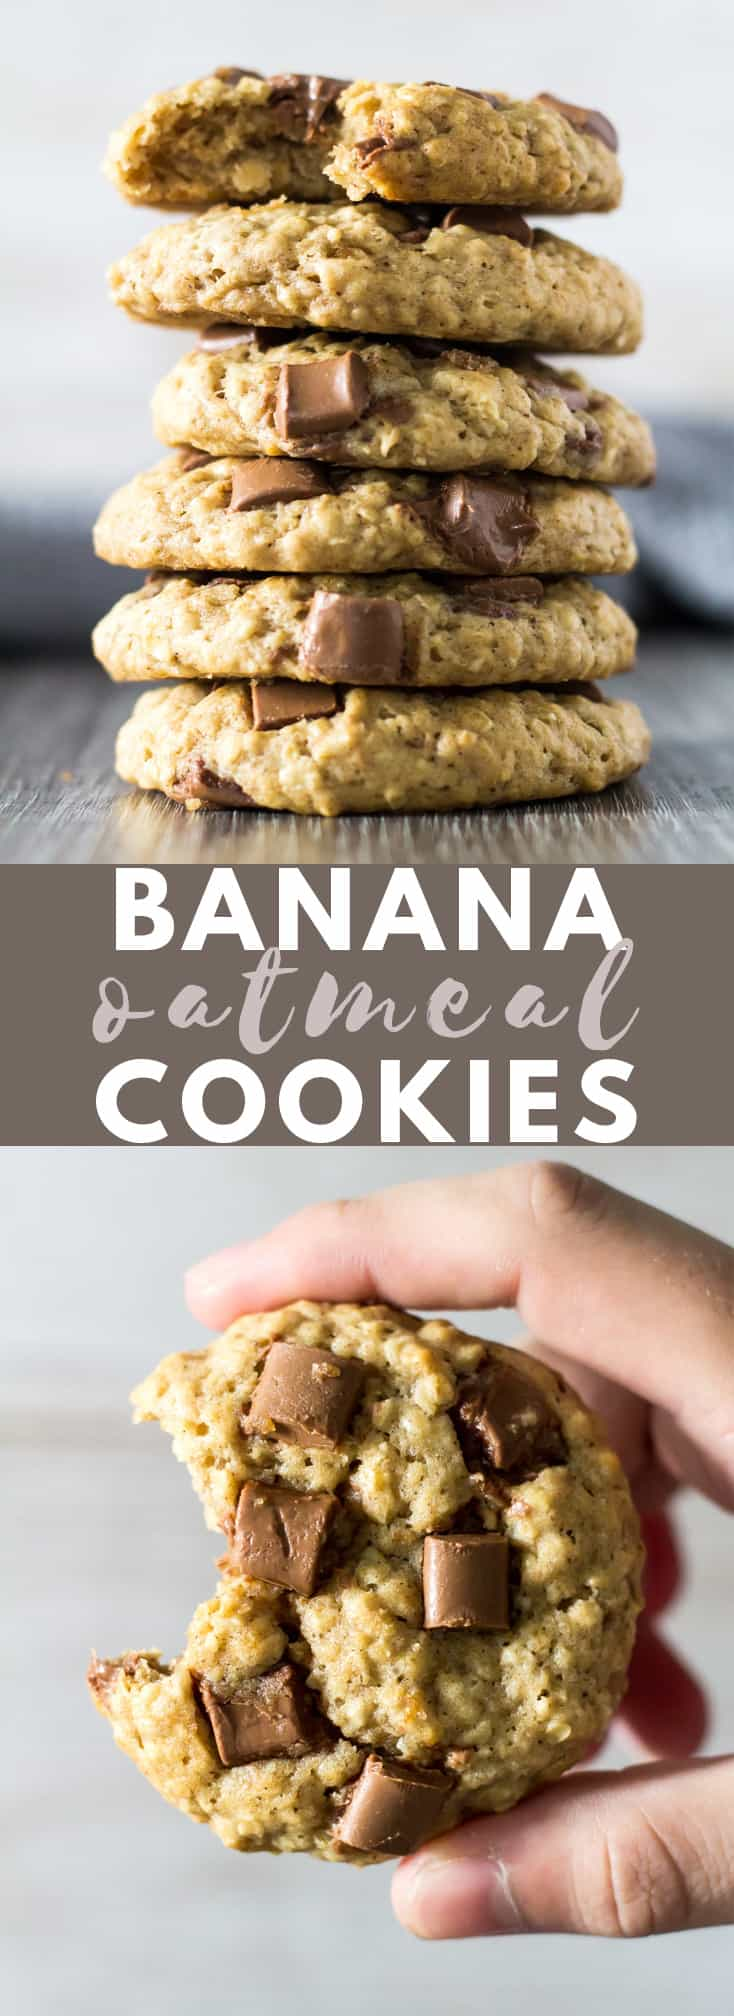 Chocolate Chip Banana Oatmeal Cookies - Deliciously thick and chewy oatmeal cookies that are loaded with banana flavour, and studded with chocolate chips!